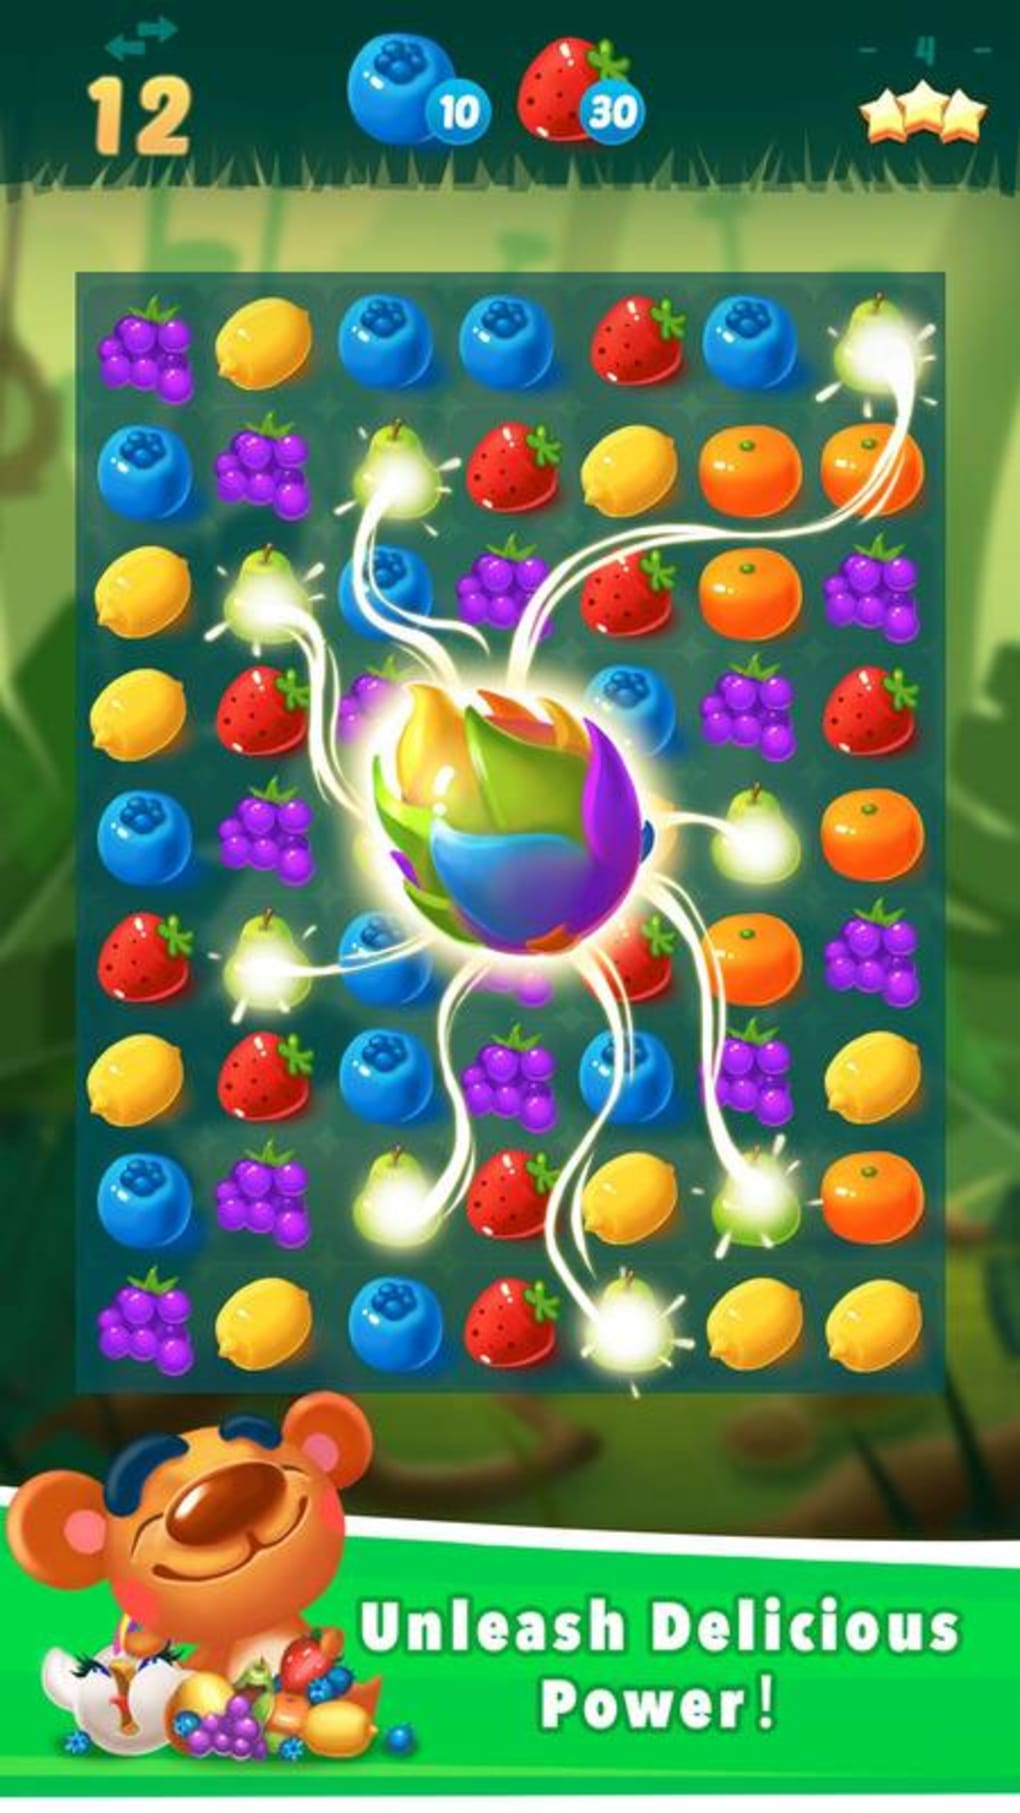 Sweet Fruit Candy APK for Android - Download